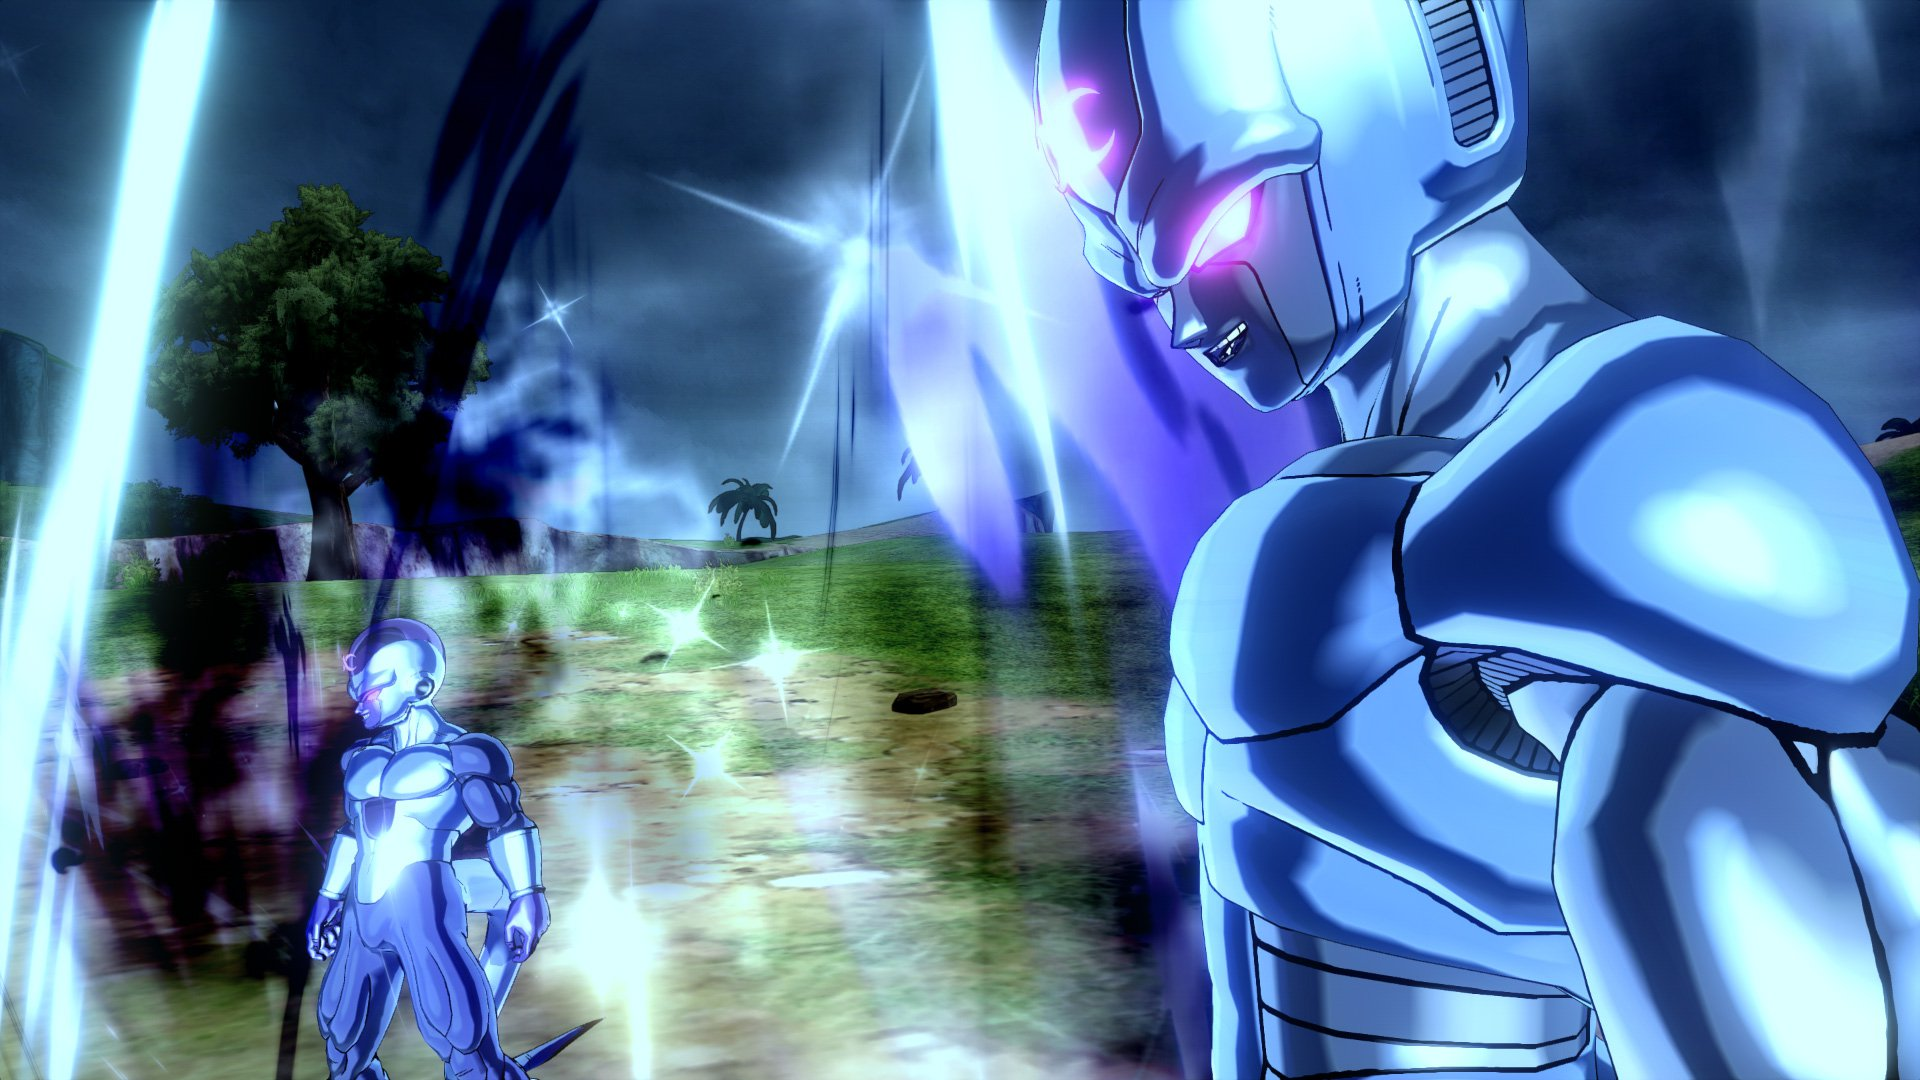 dragon-ball-xenoverse-2-cooler-story-screenshots-01